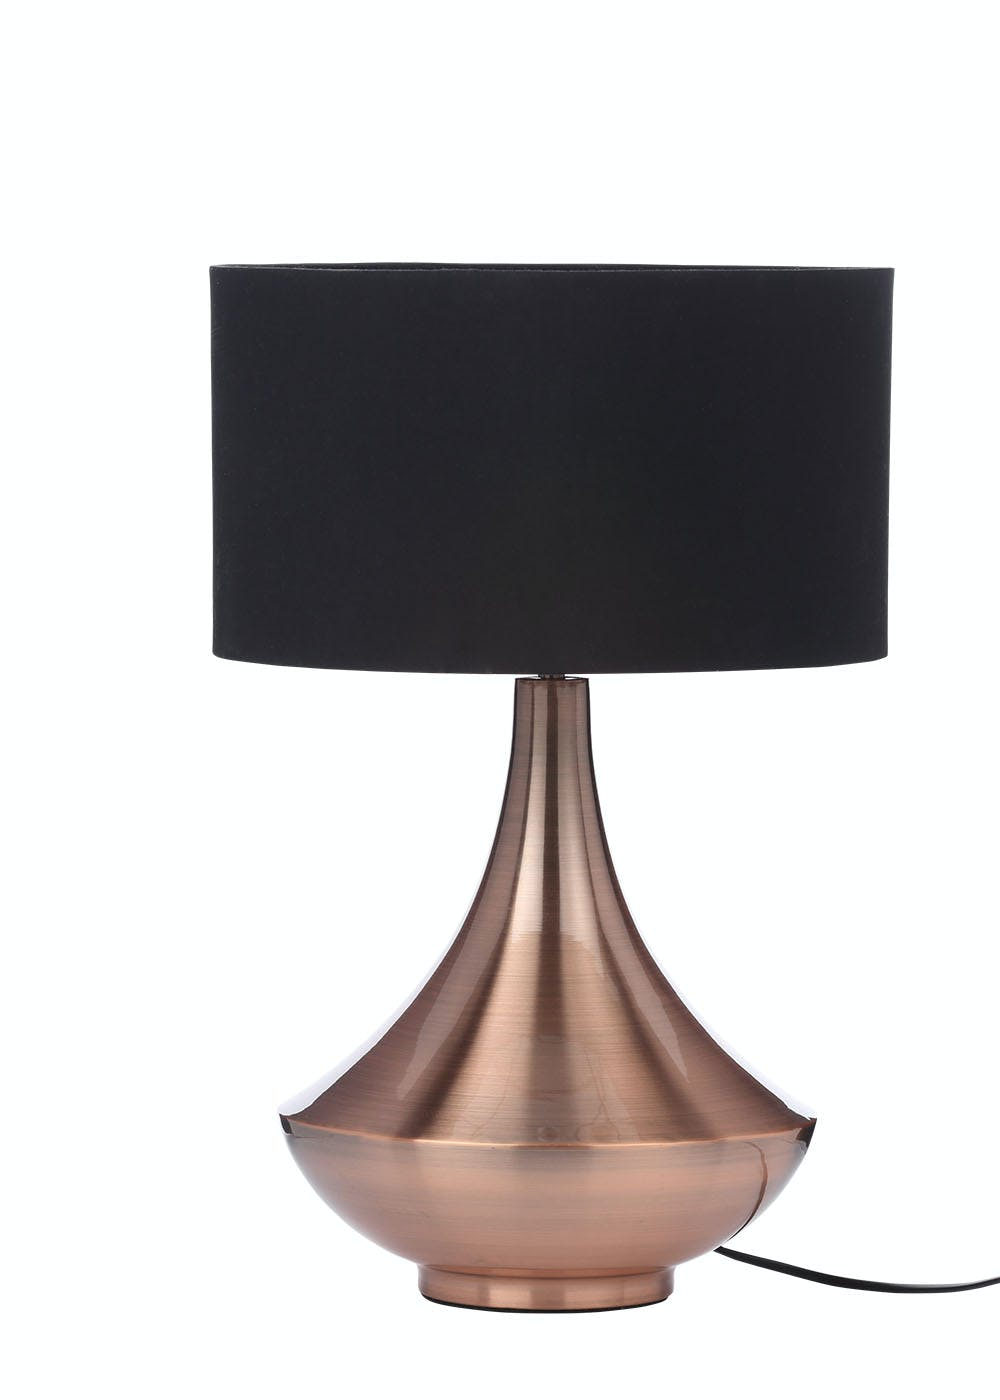 Phoebe metal table lamp h52cm x w27cm matalan phoebe metal table lamp h52cm x w27cm mozeypictures Image collections